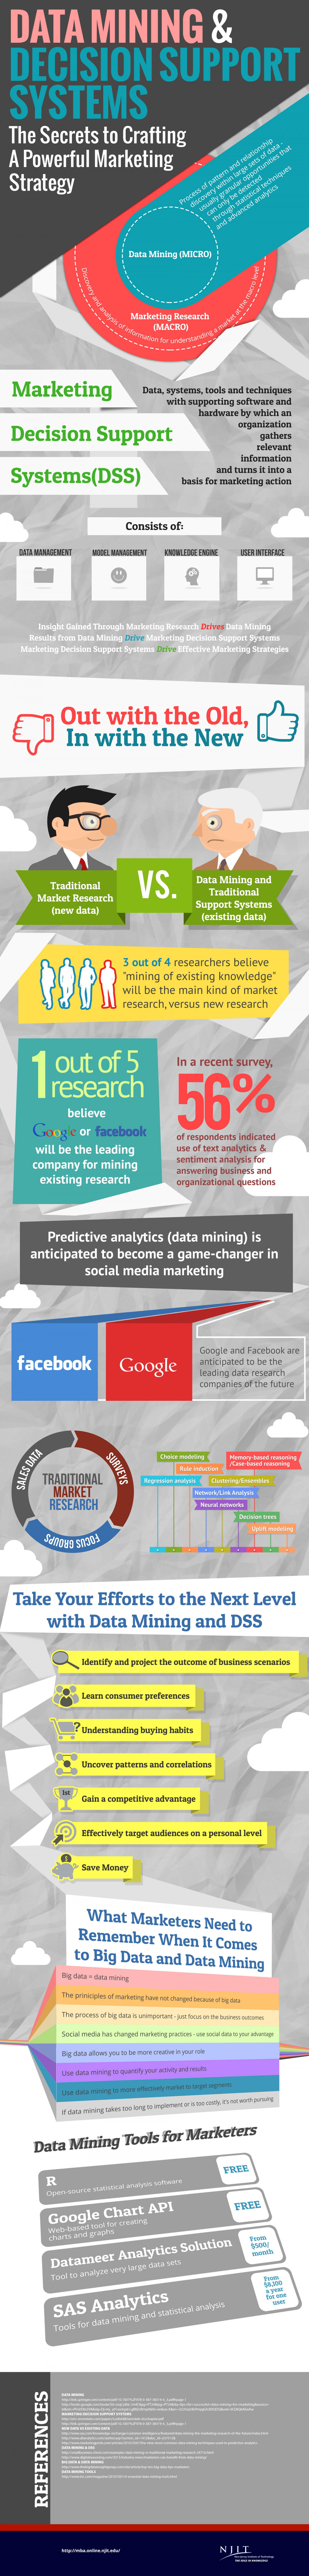 Data Mining & Decision Support Systems Infographic